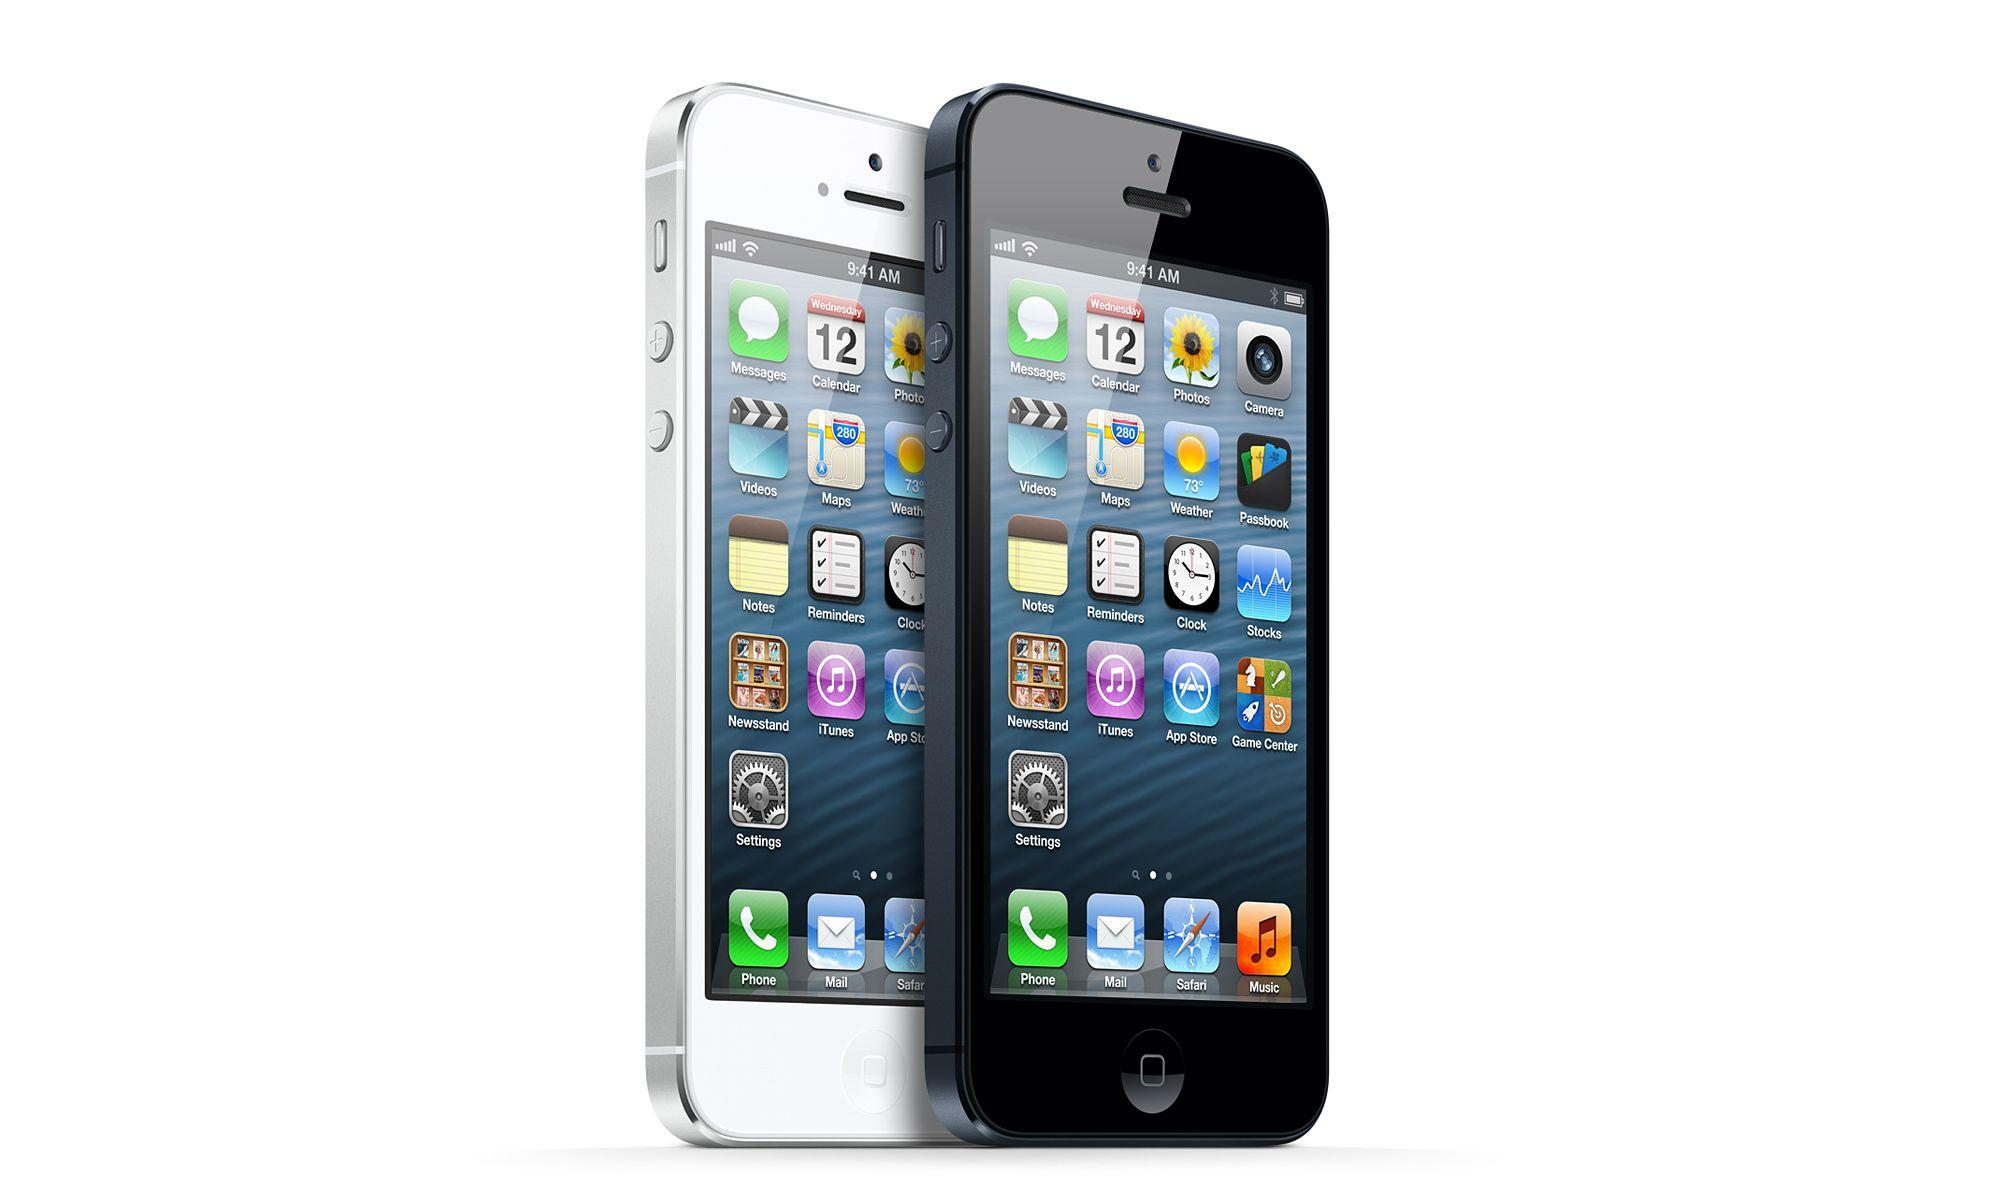 iPhone - Buy iPhone 5 with Free Shipping - Apple Store (U.S.)